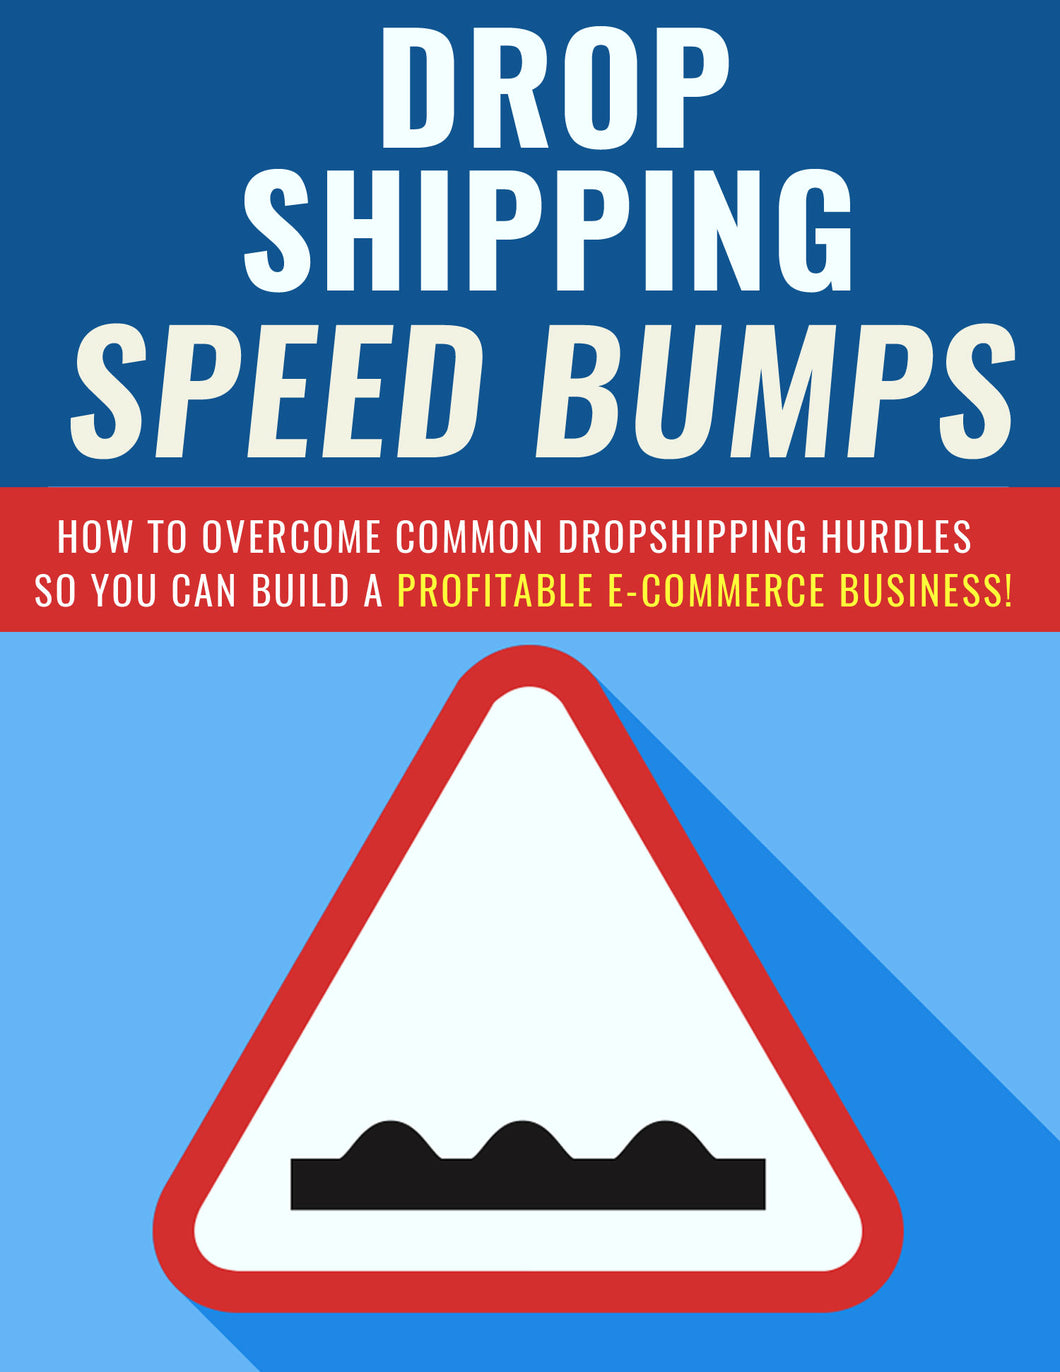 Avoid Dropshipping Mistakes